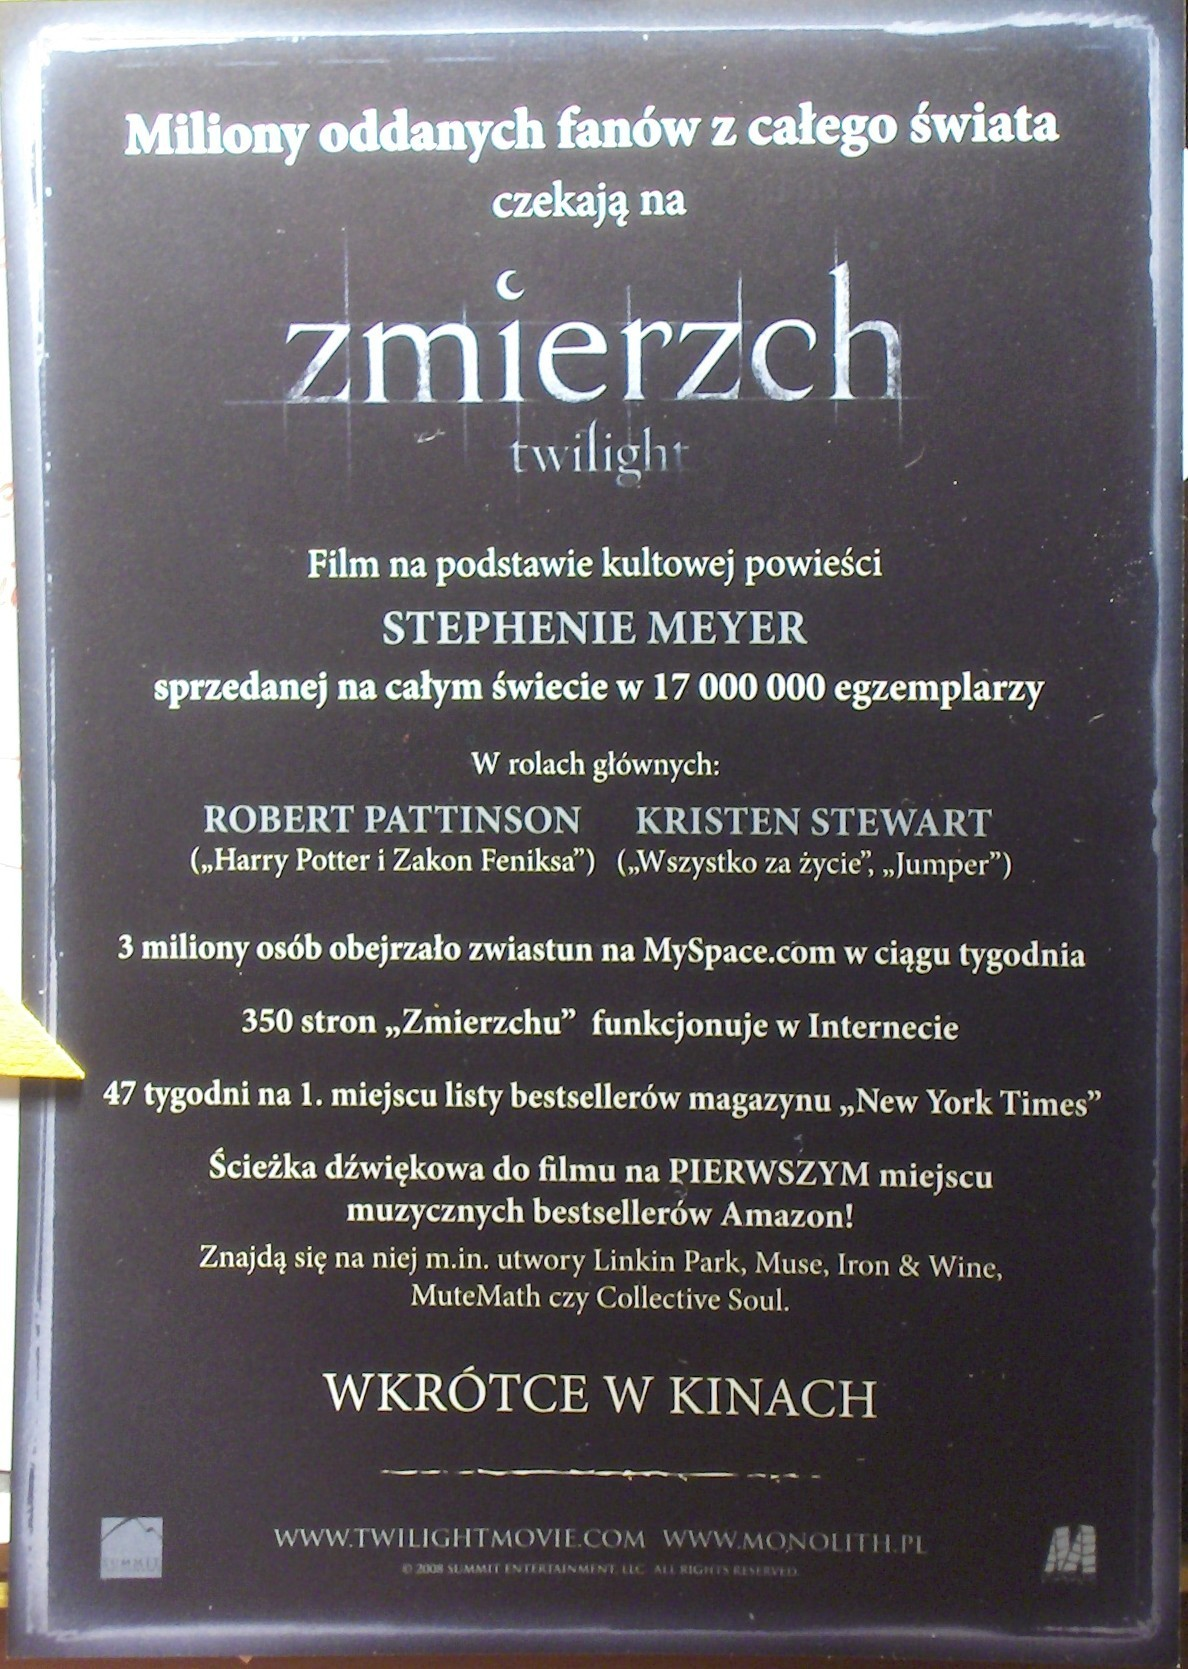 polish leaflet